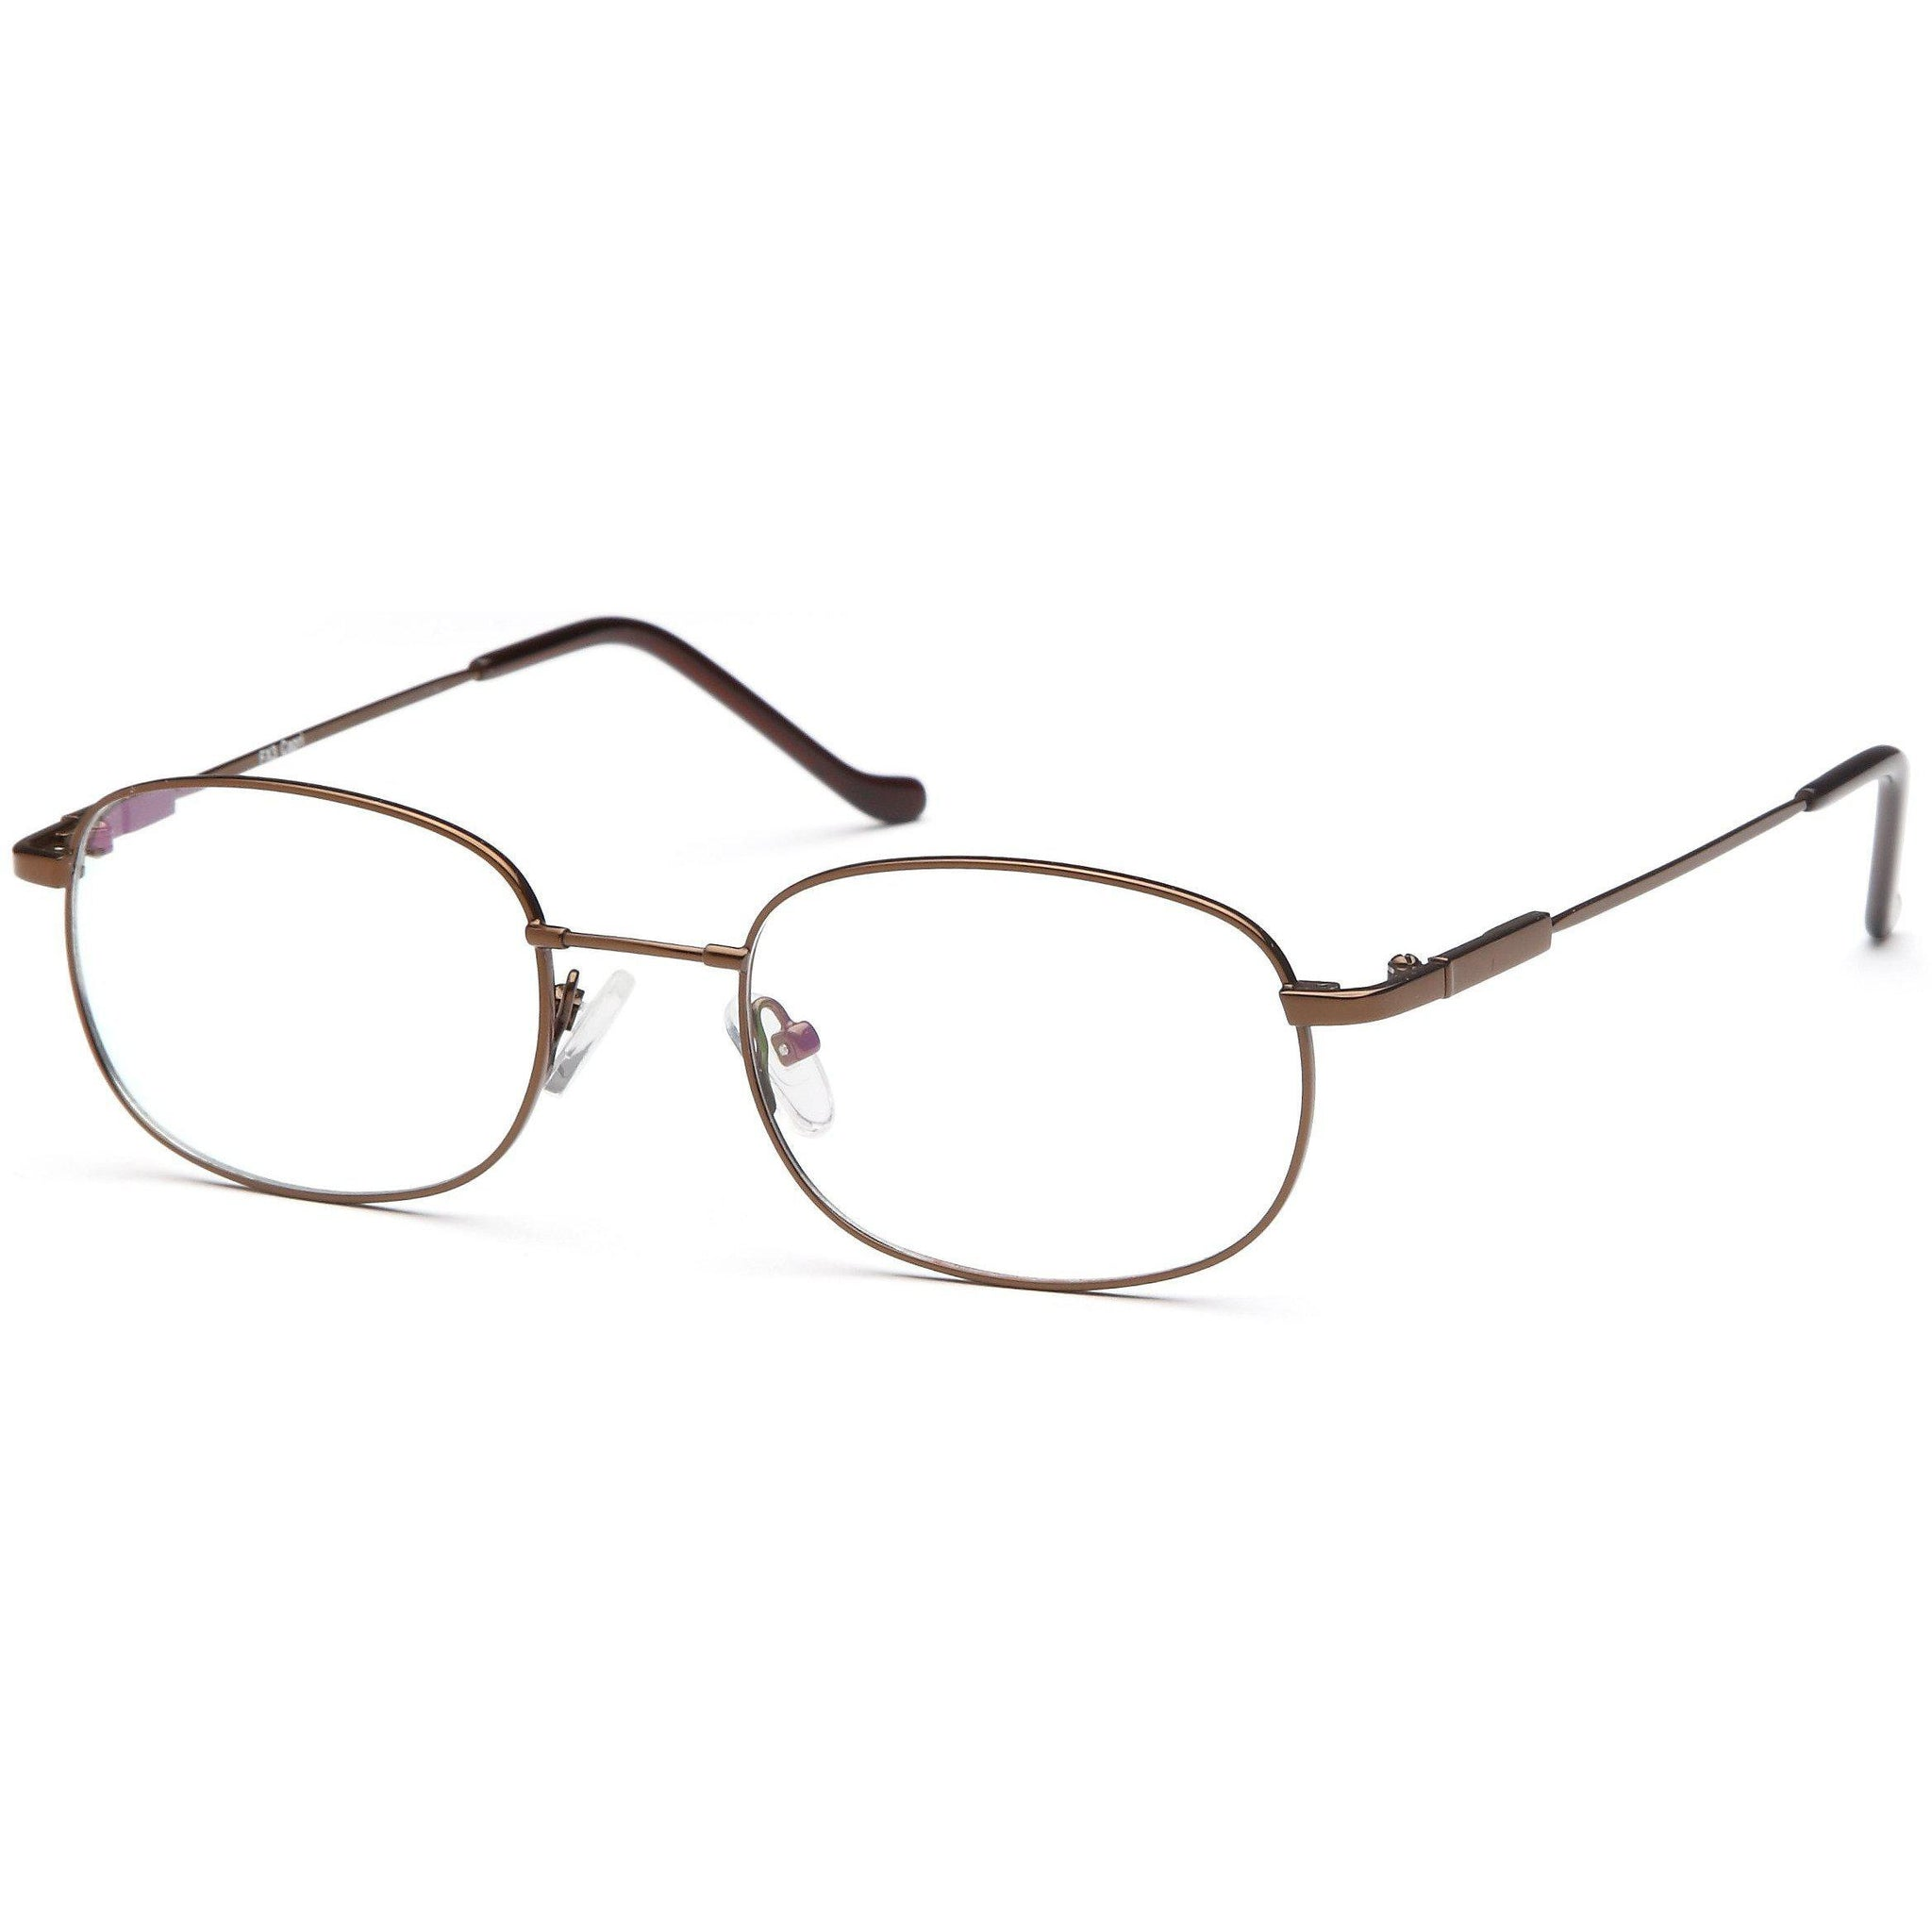 Titanium Prescription Glasses FX 3 Eyeglasses Frame